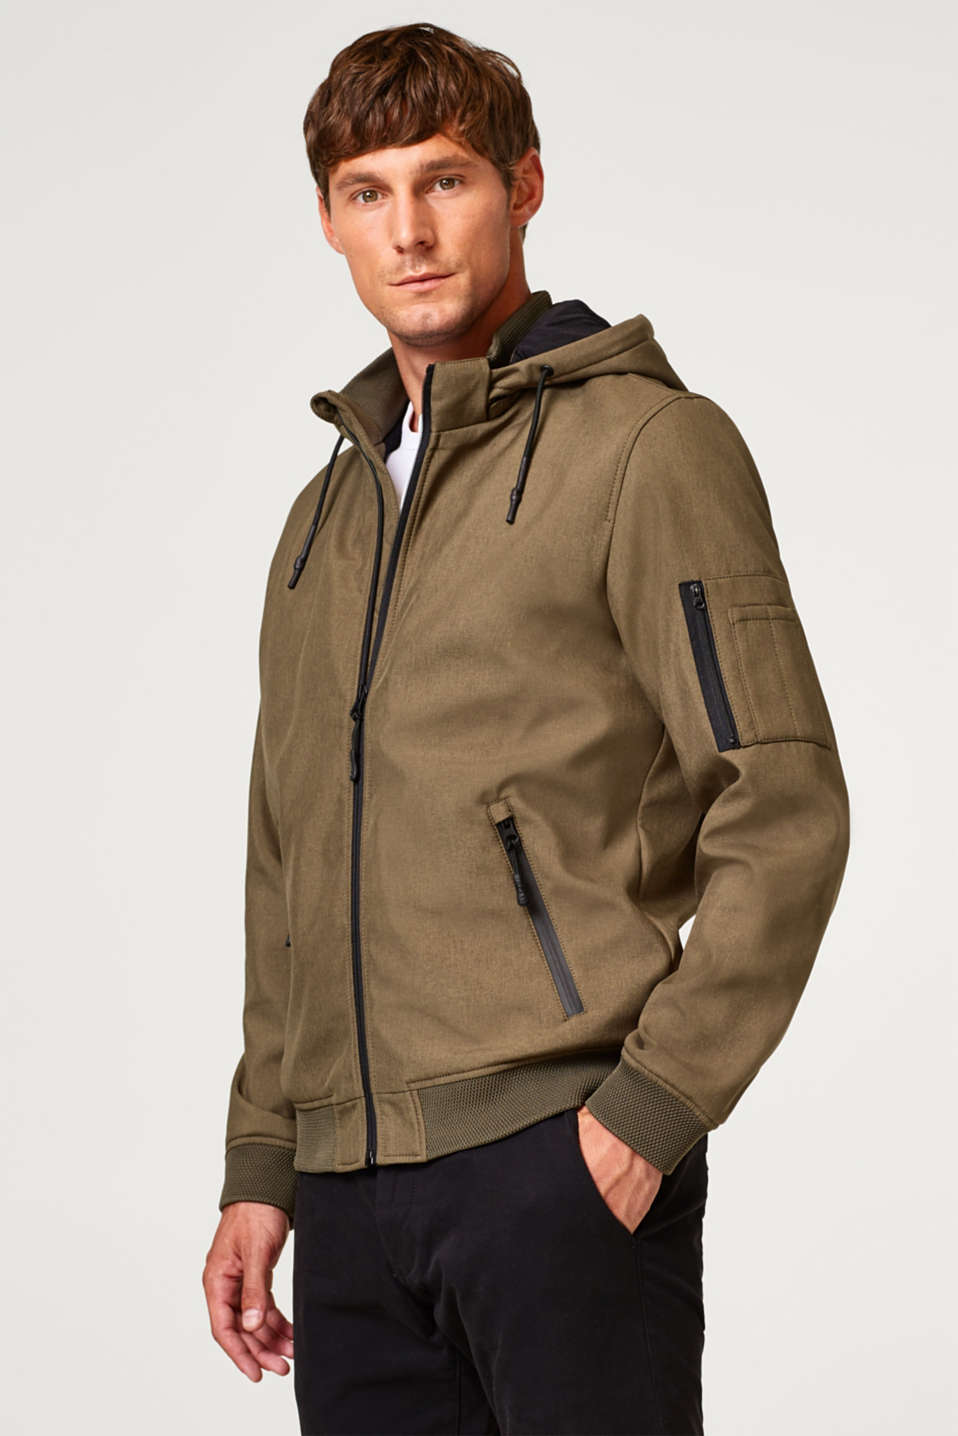 Esprit - Between-the-seasons jacket with a hood